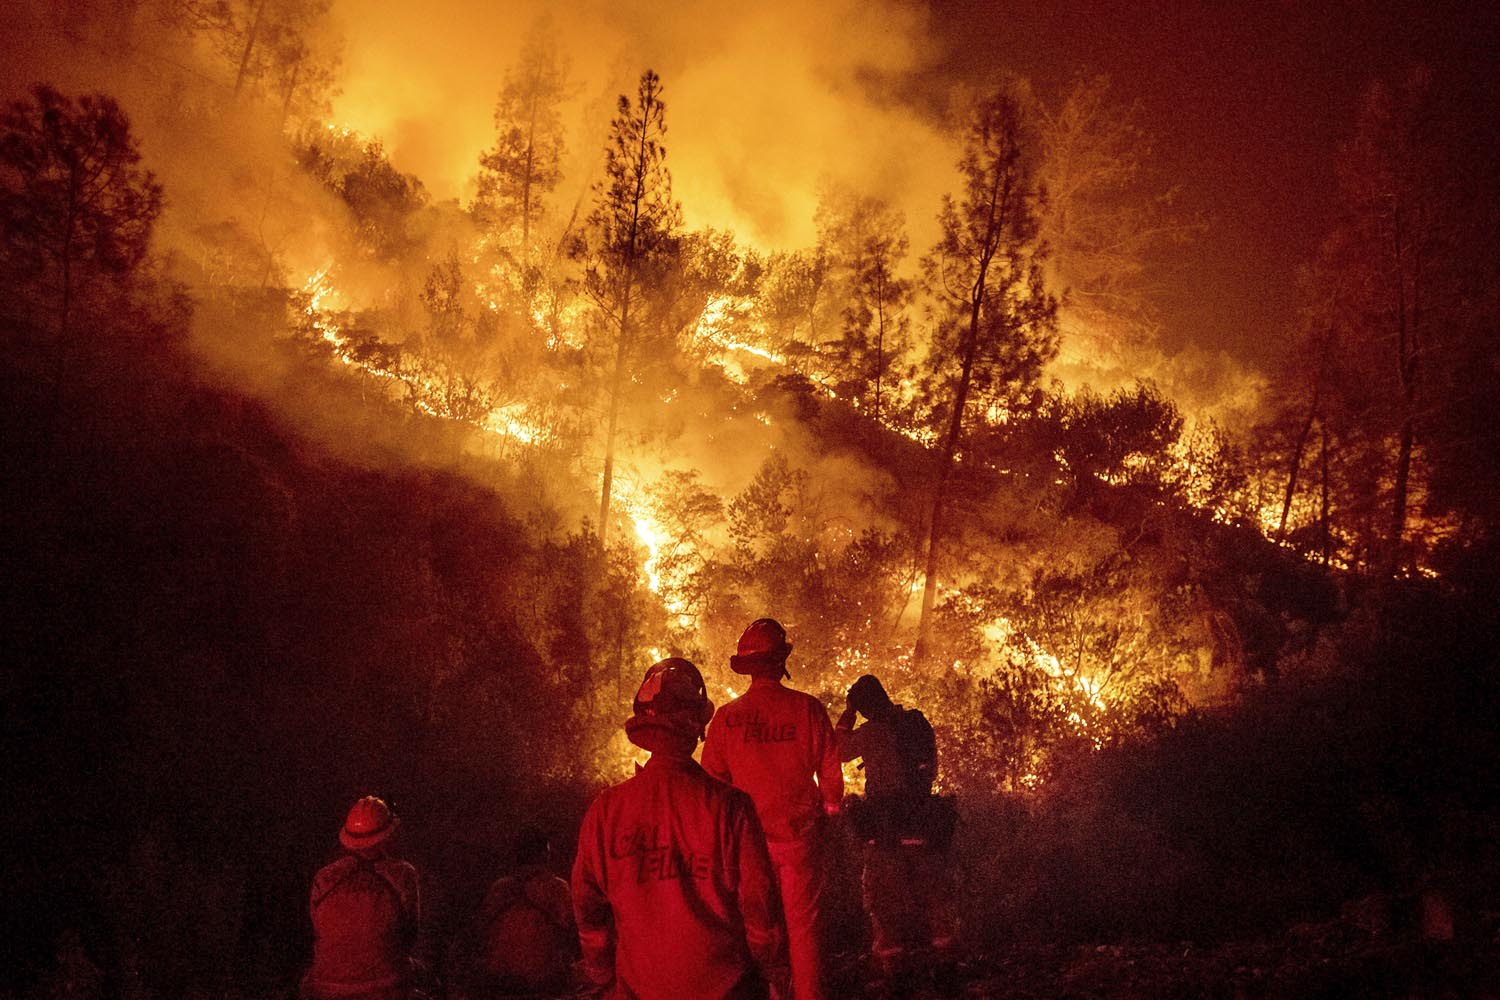 In this Aug. 7, 2018 file photo, firefighters monitor a backfire while battling the Ranch Fire, part of the Mendocino Complex Fire near Ladoga, Calif. (Noah Berger/AP)